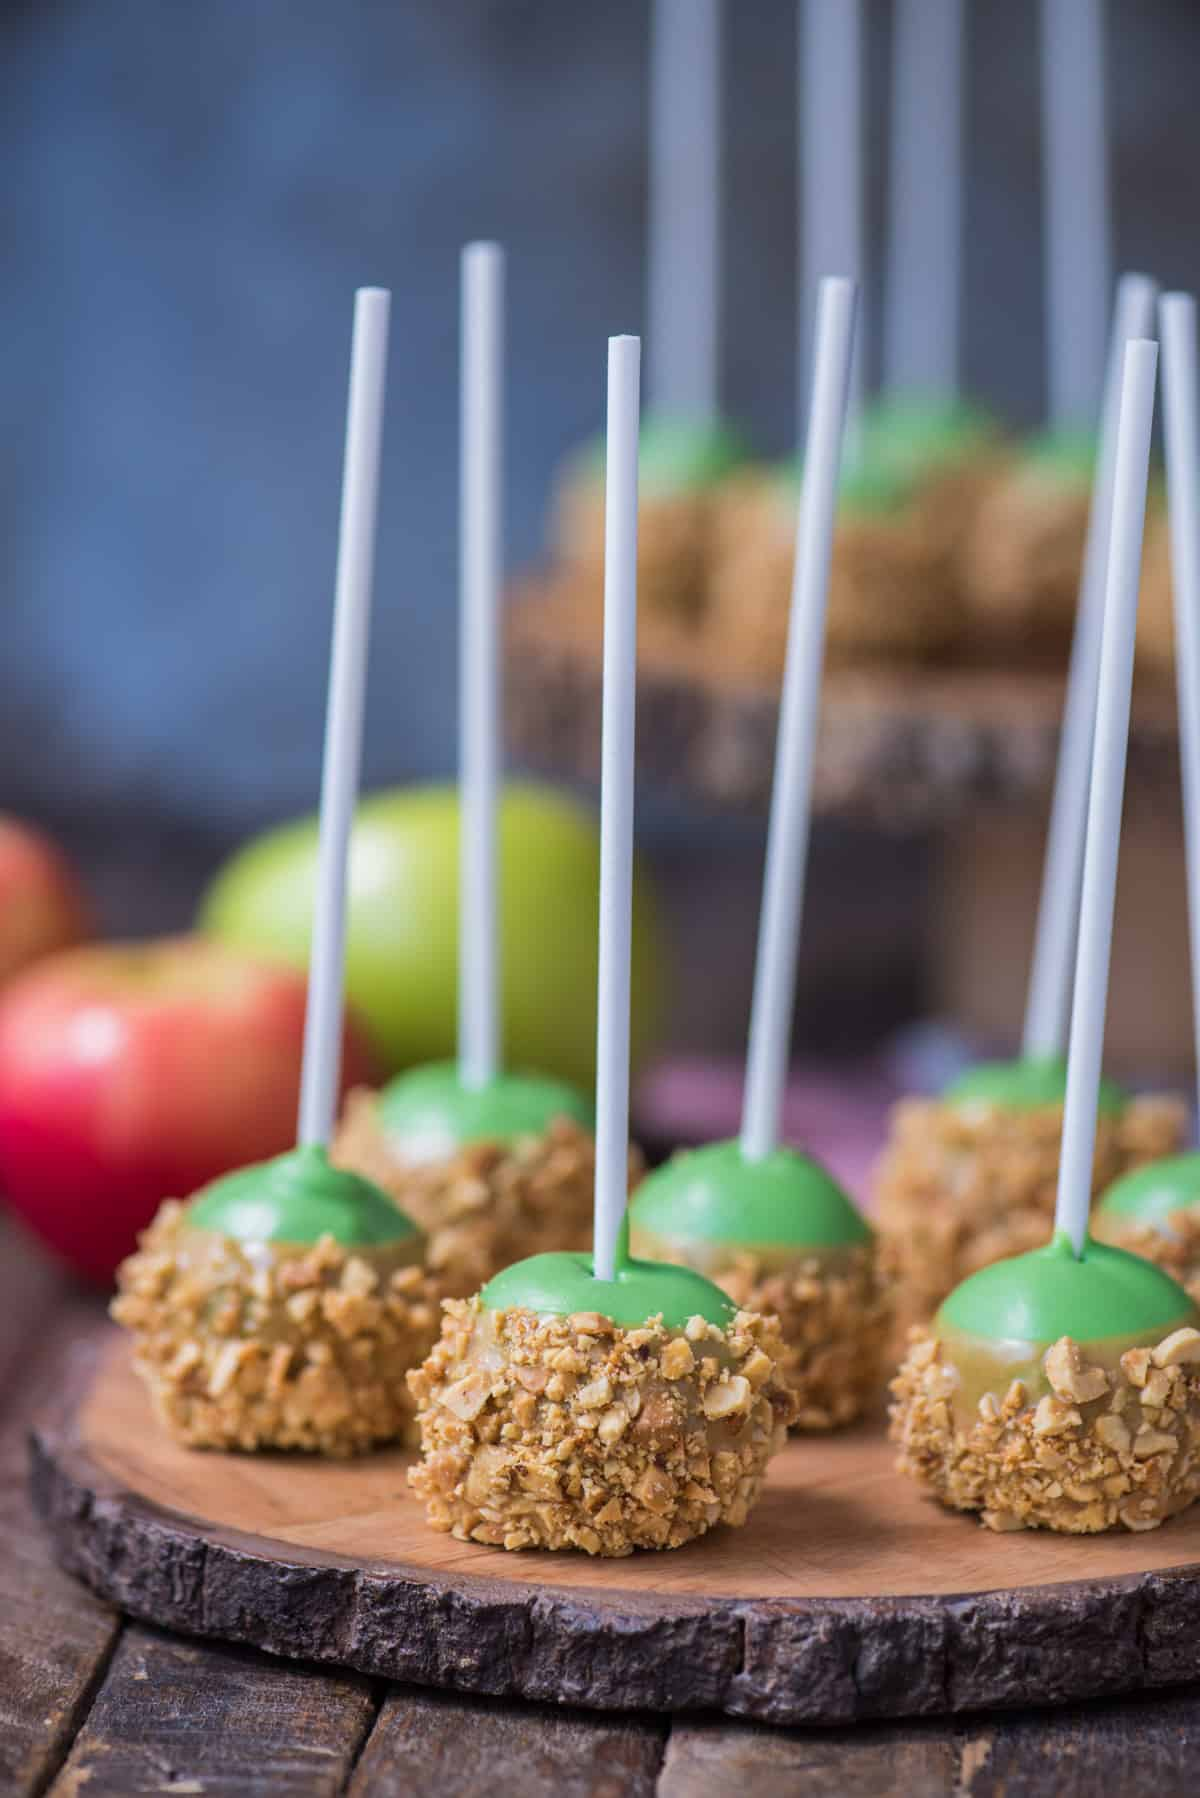 oreo balls that look like caramel apples on round wooden stand with metal background